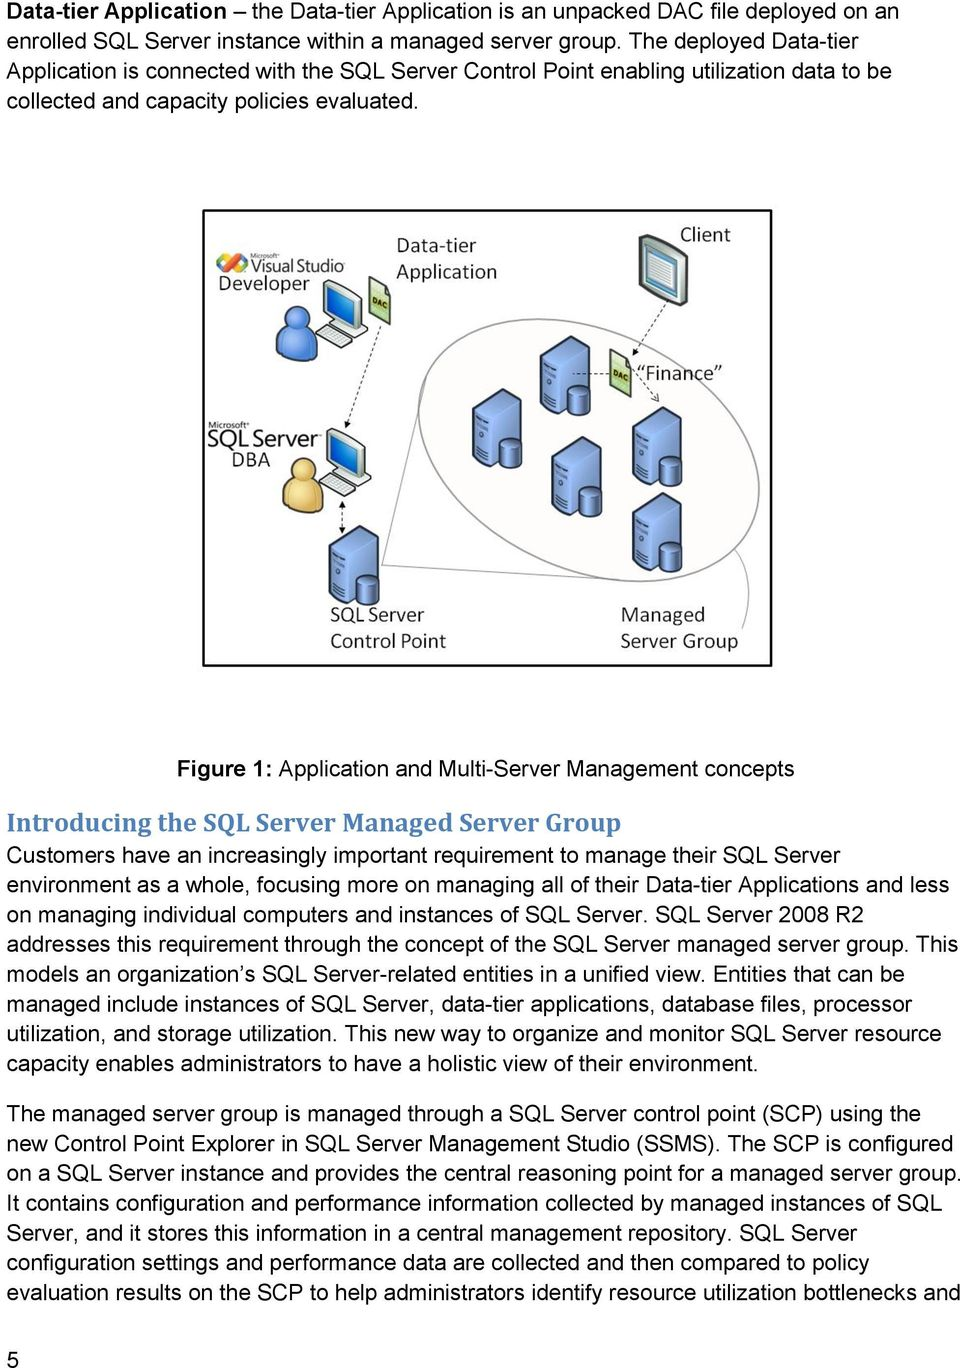 Figure 1: Application and Multi-Server Management concepts Introducing the SQL Server Managed Server Group Customers have an increasingly important requirement to manage their SQL Server environment